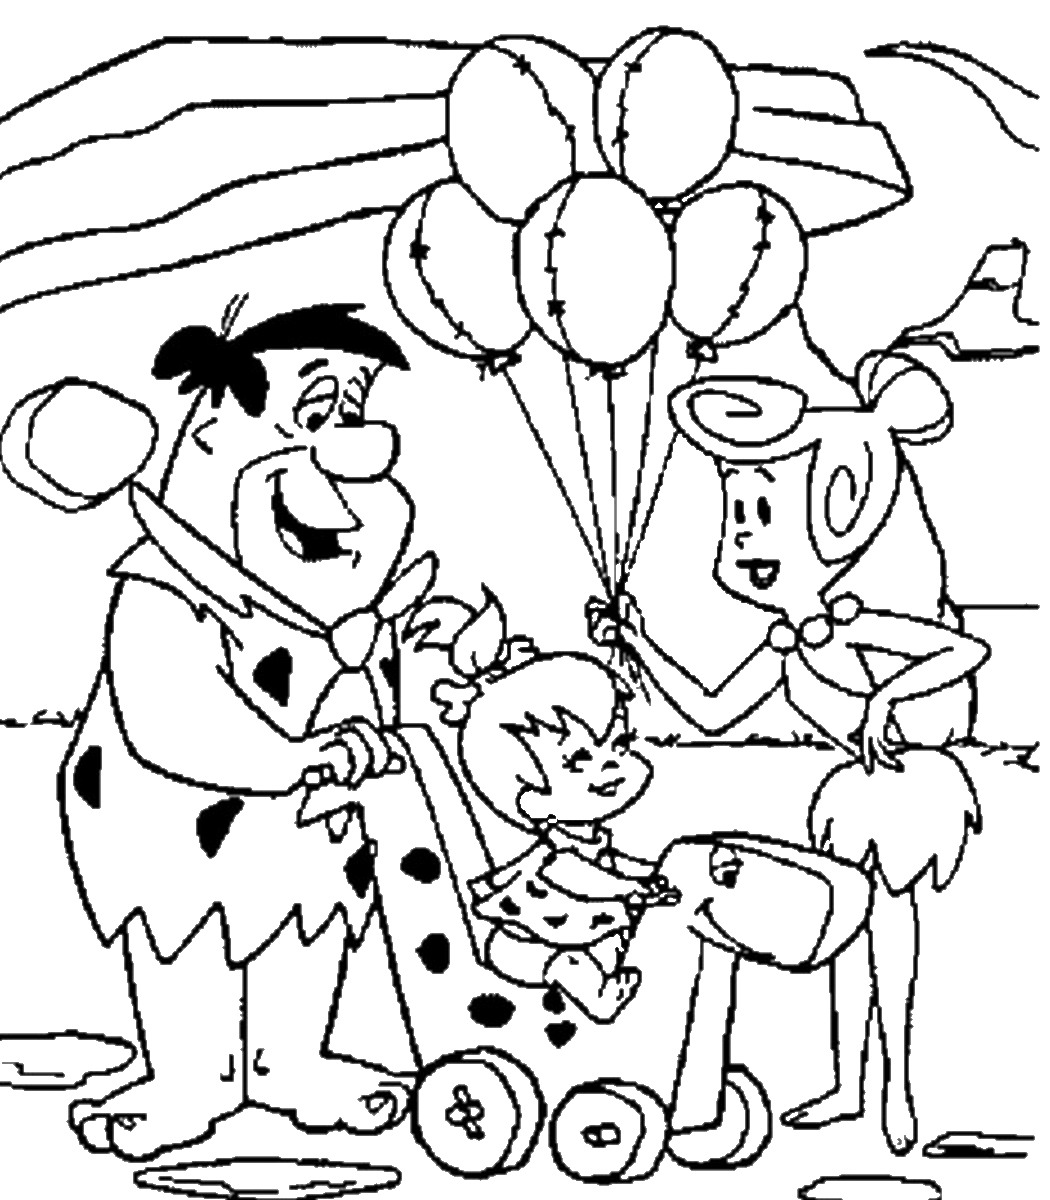 Flintstones coloring pages download